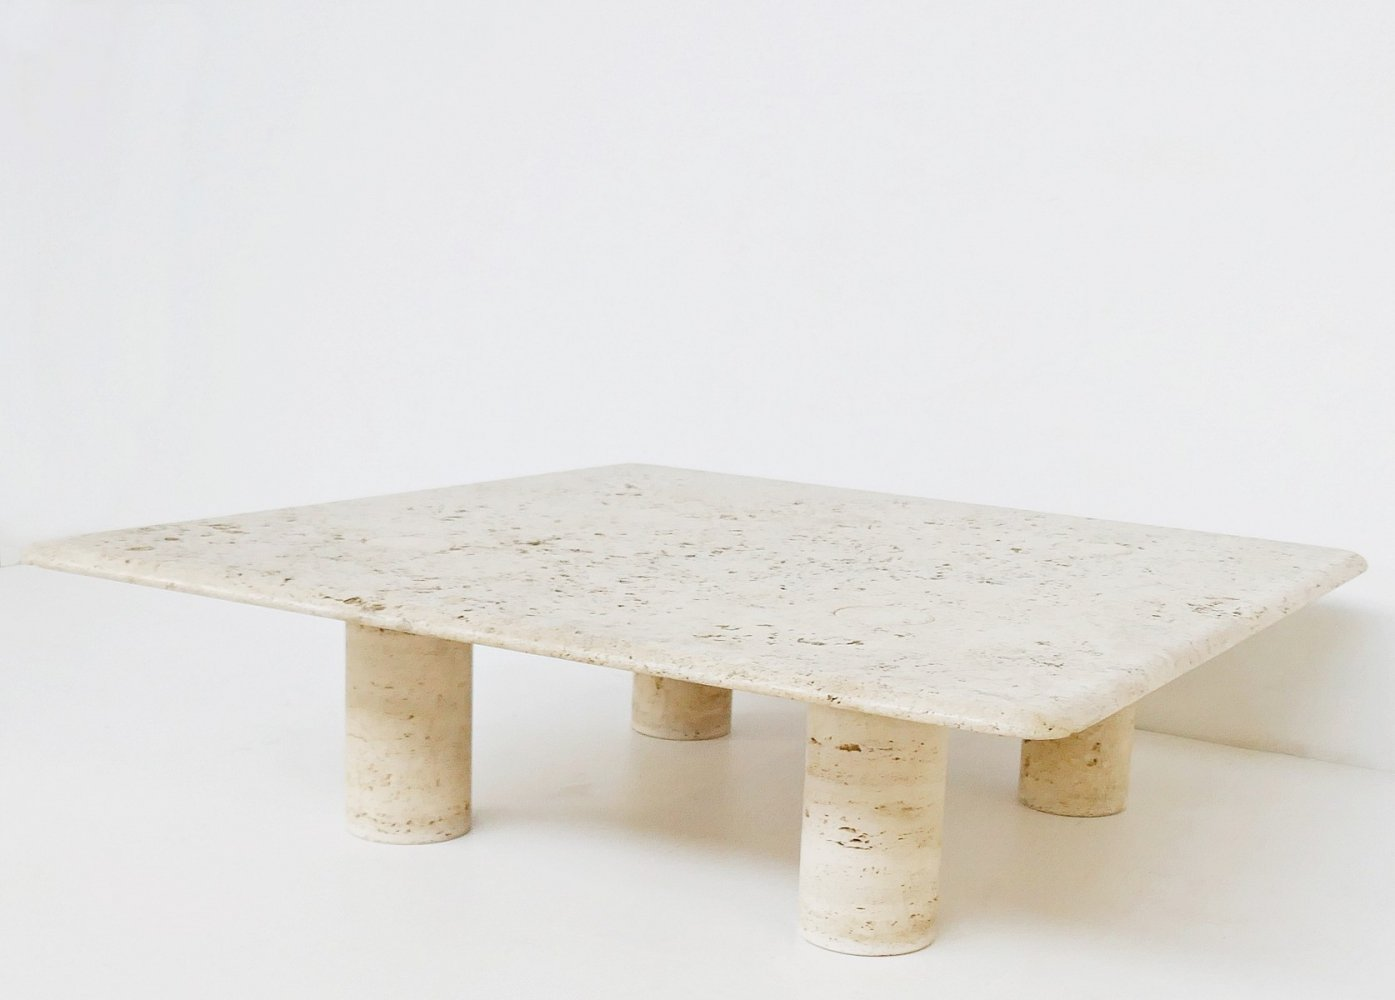 Large Travertine Coffee Table by Angelo Mangiarotti for Up&Up, Italy 1970s